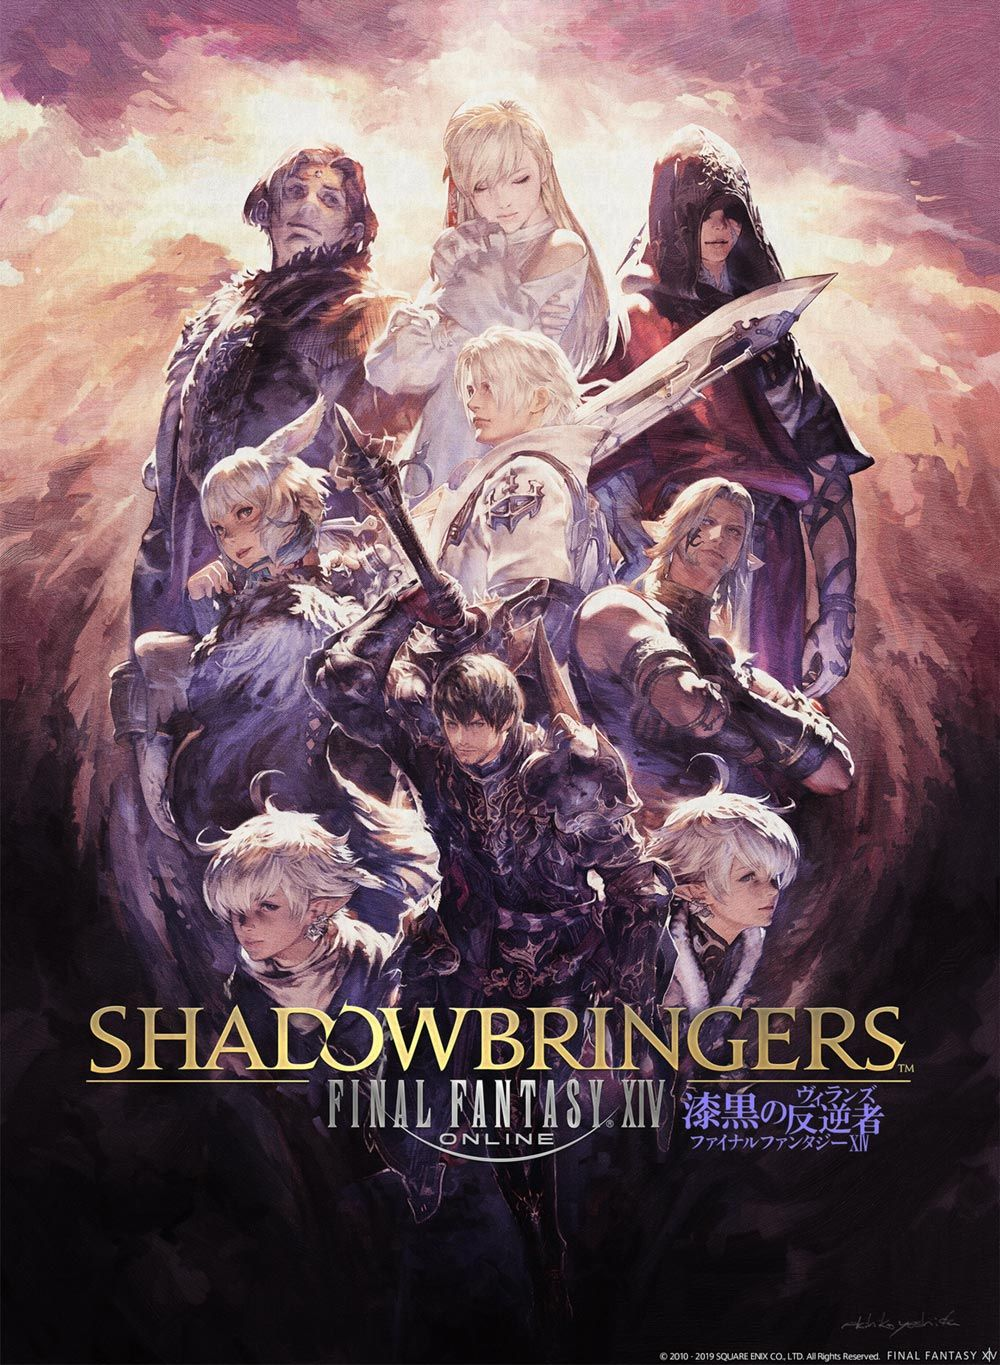 Final Fantasy Xiv Shadowbringers Box Art From Final Fantasy Xiv